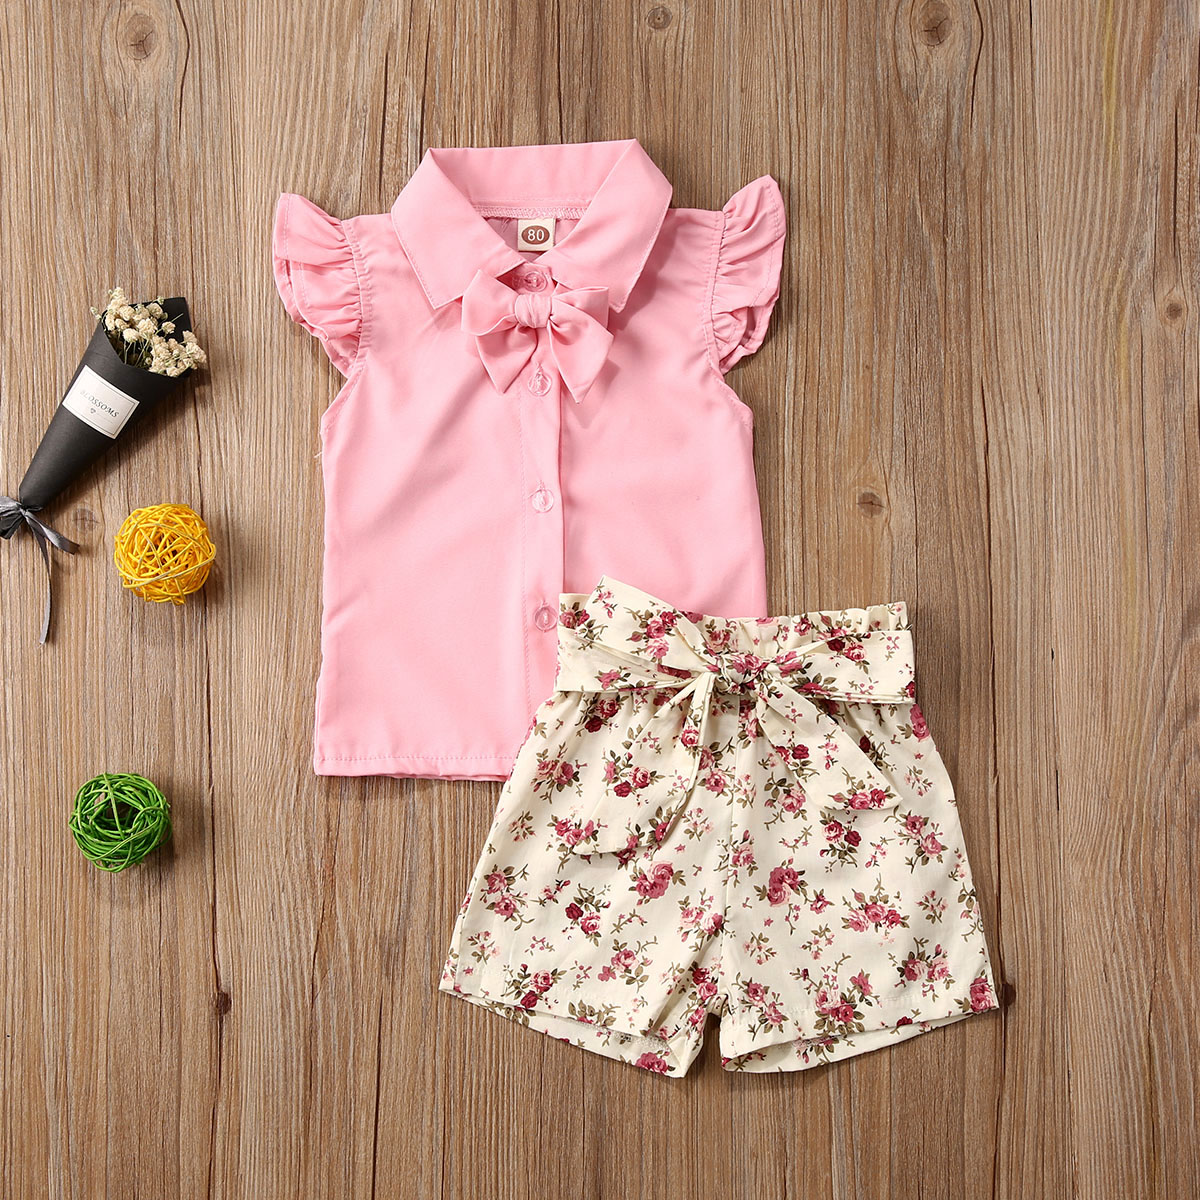 Pudcoco Toddler Baby Girl Clothes Solid Color Sleeveless Shirt Tops Flower Print Short Pants 2Pcs Outfits Cotton Sunsuit Set